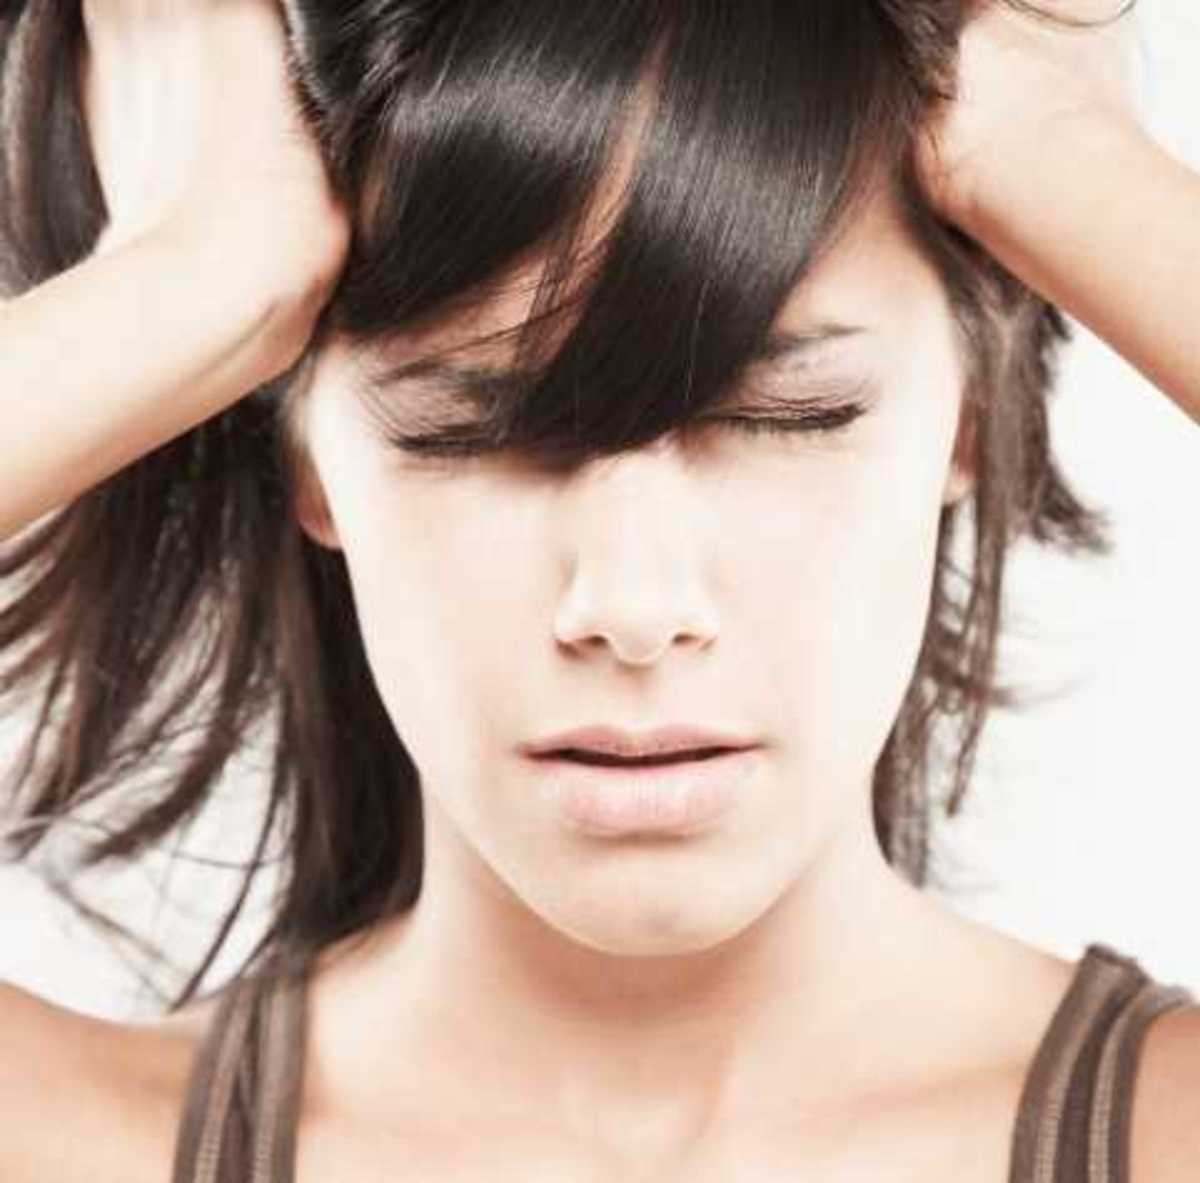 TMD headaches can really be a drag and effect daily routines.